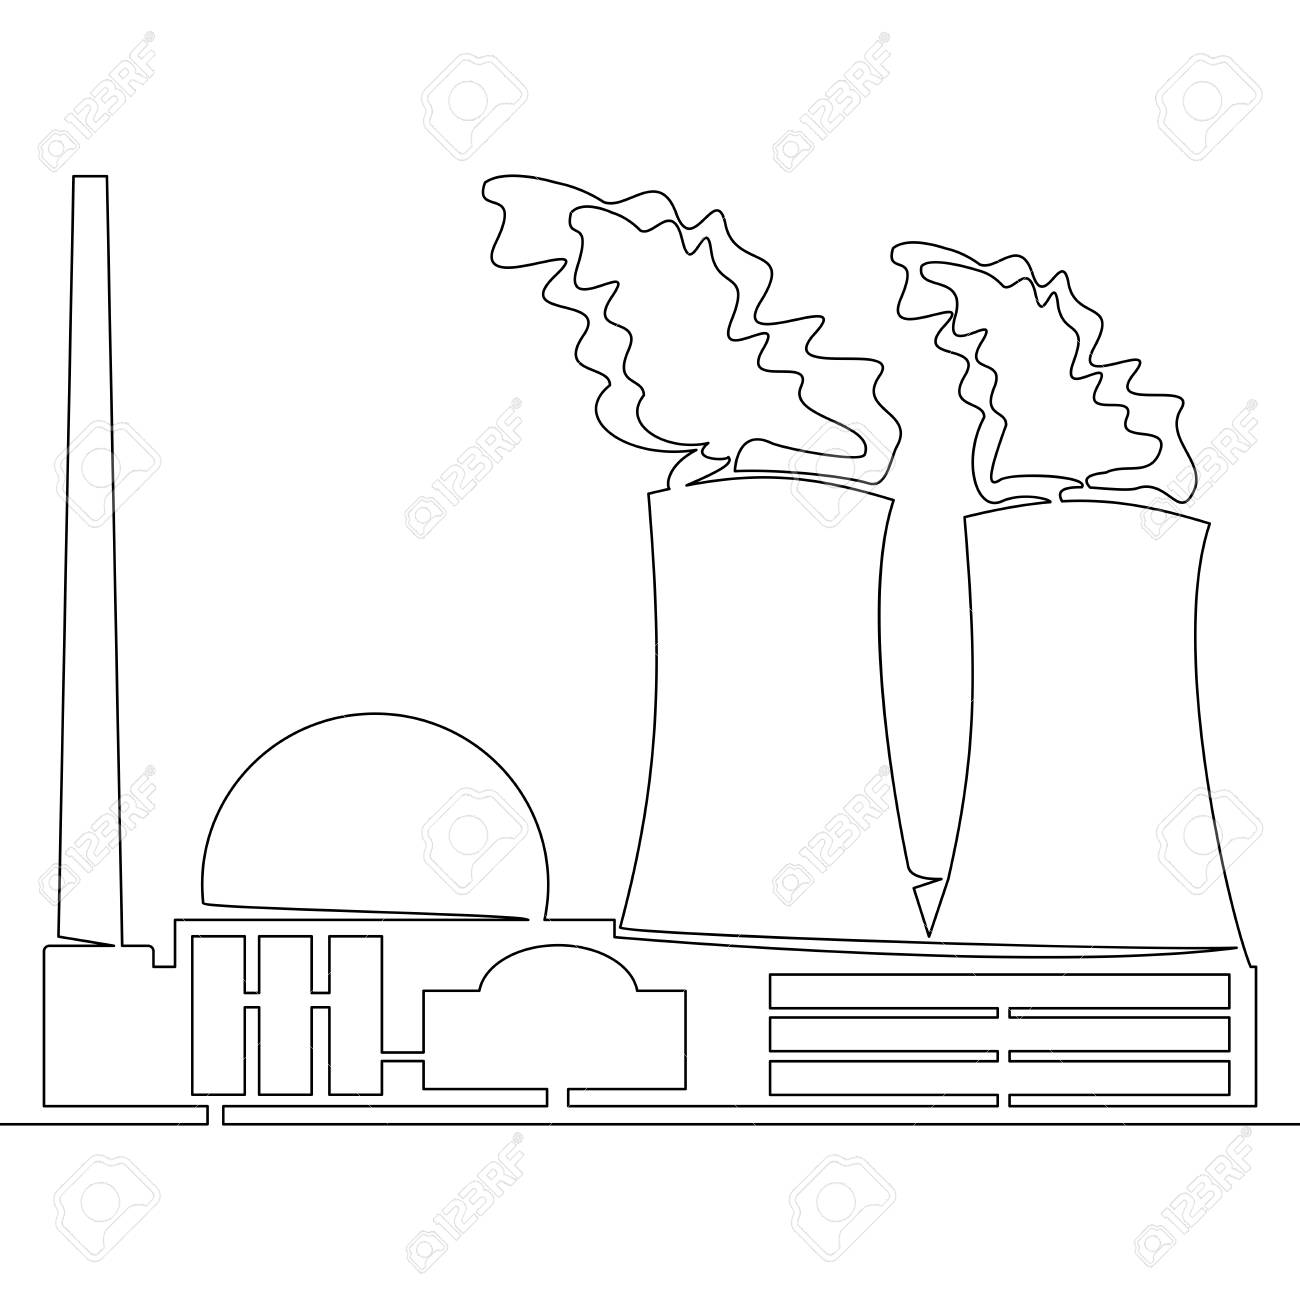 continuous line drawing nuclear power plant concept vector illustration  stock vector - 114497311